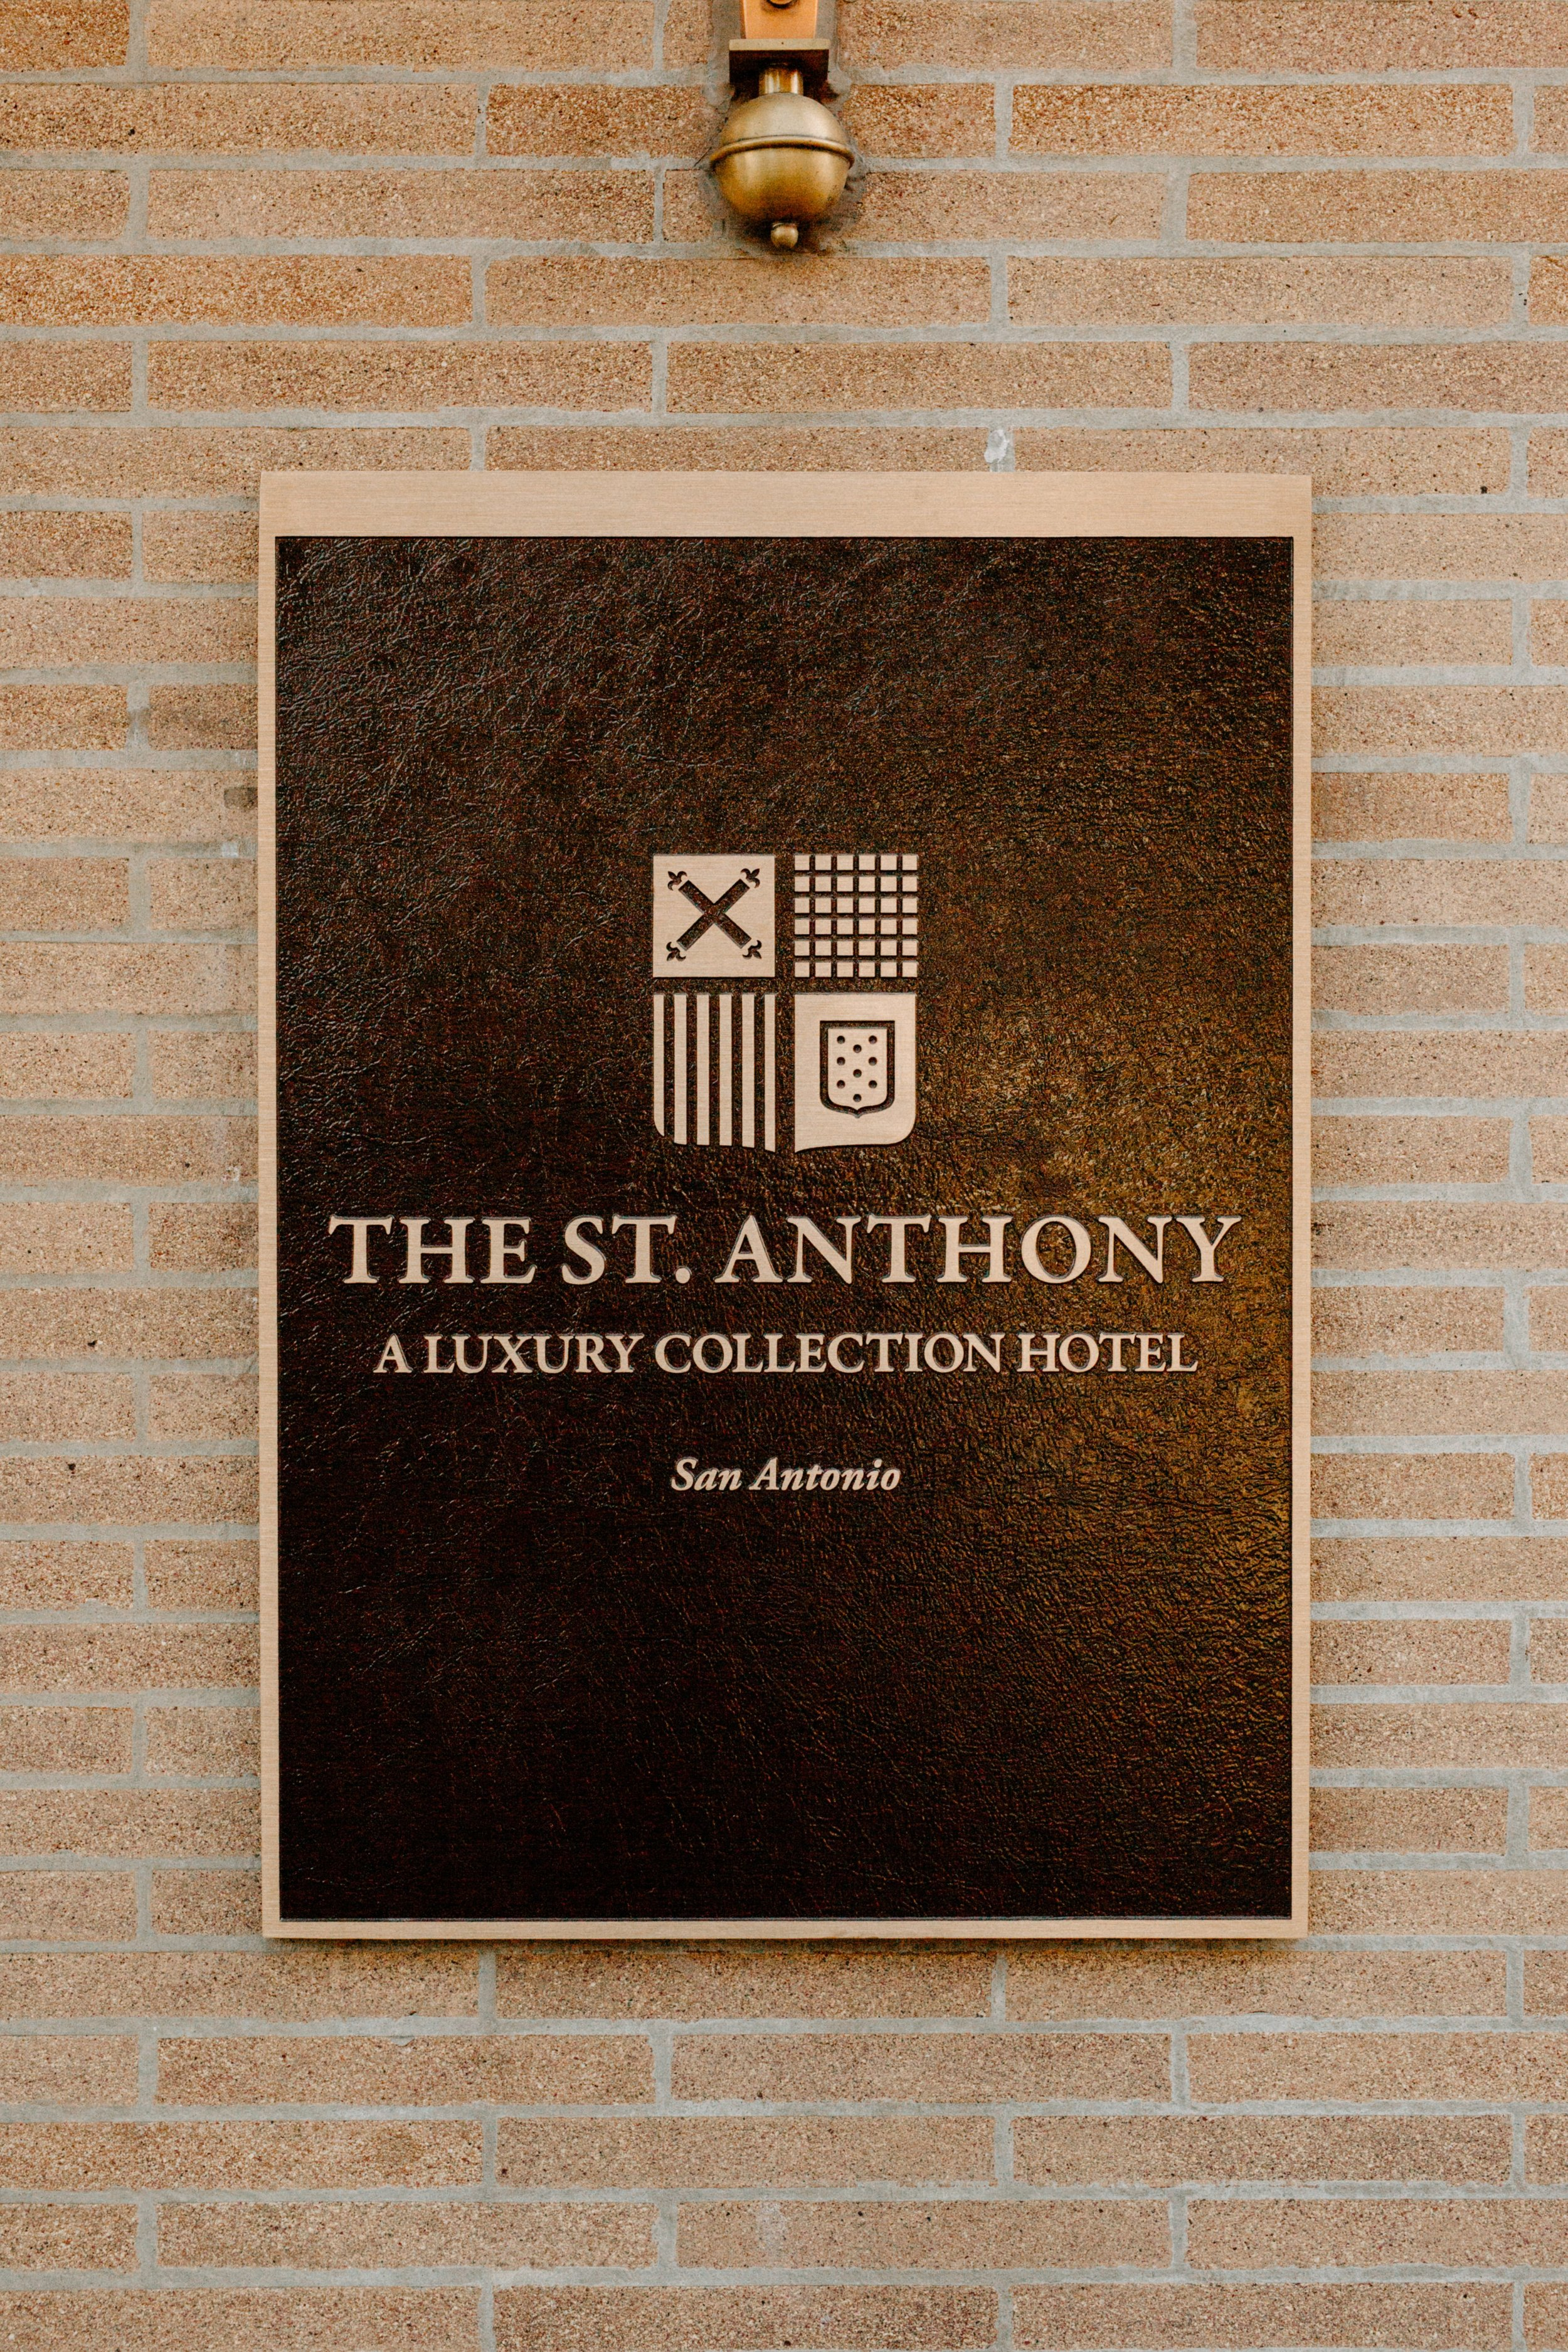 st-anthony-hotel-wedding-photography-9996san-antonio.JPG